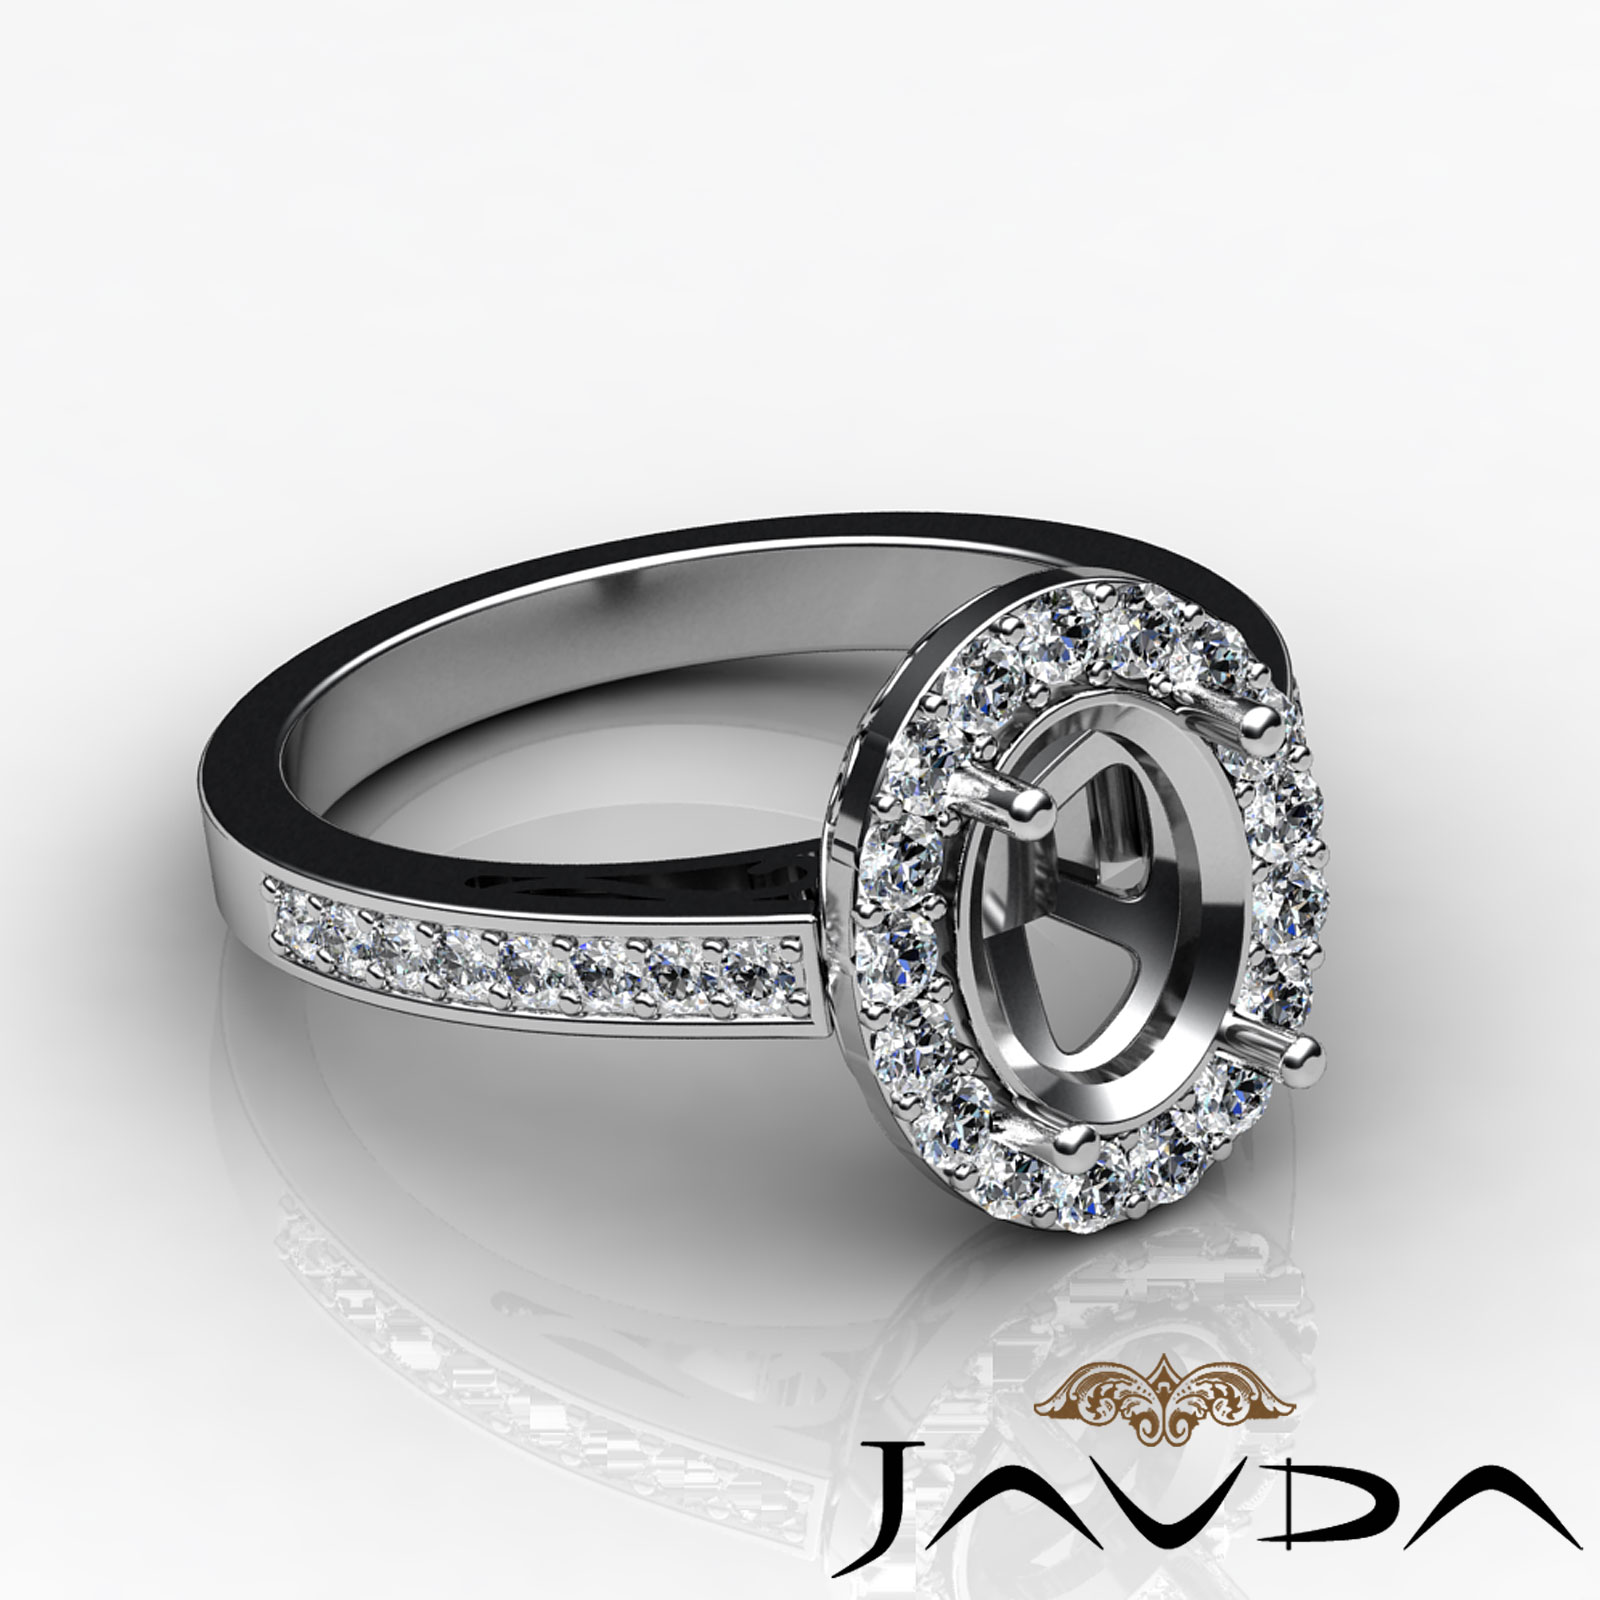 Halo Pave Setting Diamond Engagement Oval Semi Mount Ring 18k White Gold 1 3C